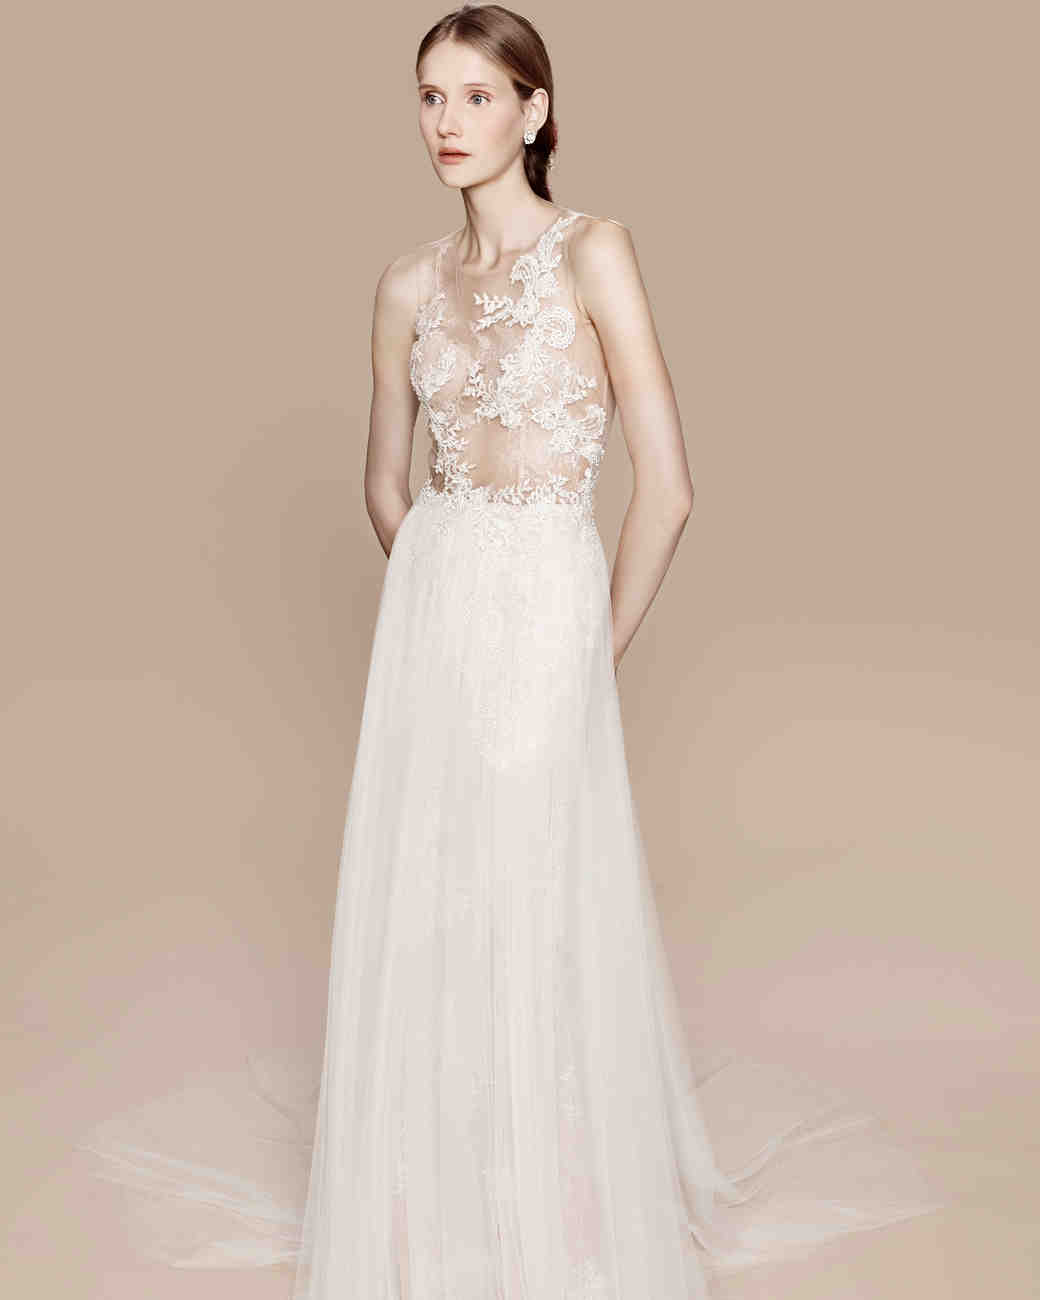 615d367cbe4 Ethereal Wedding Gown with Floral Appliques and Tulle